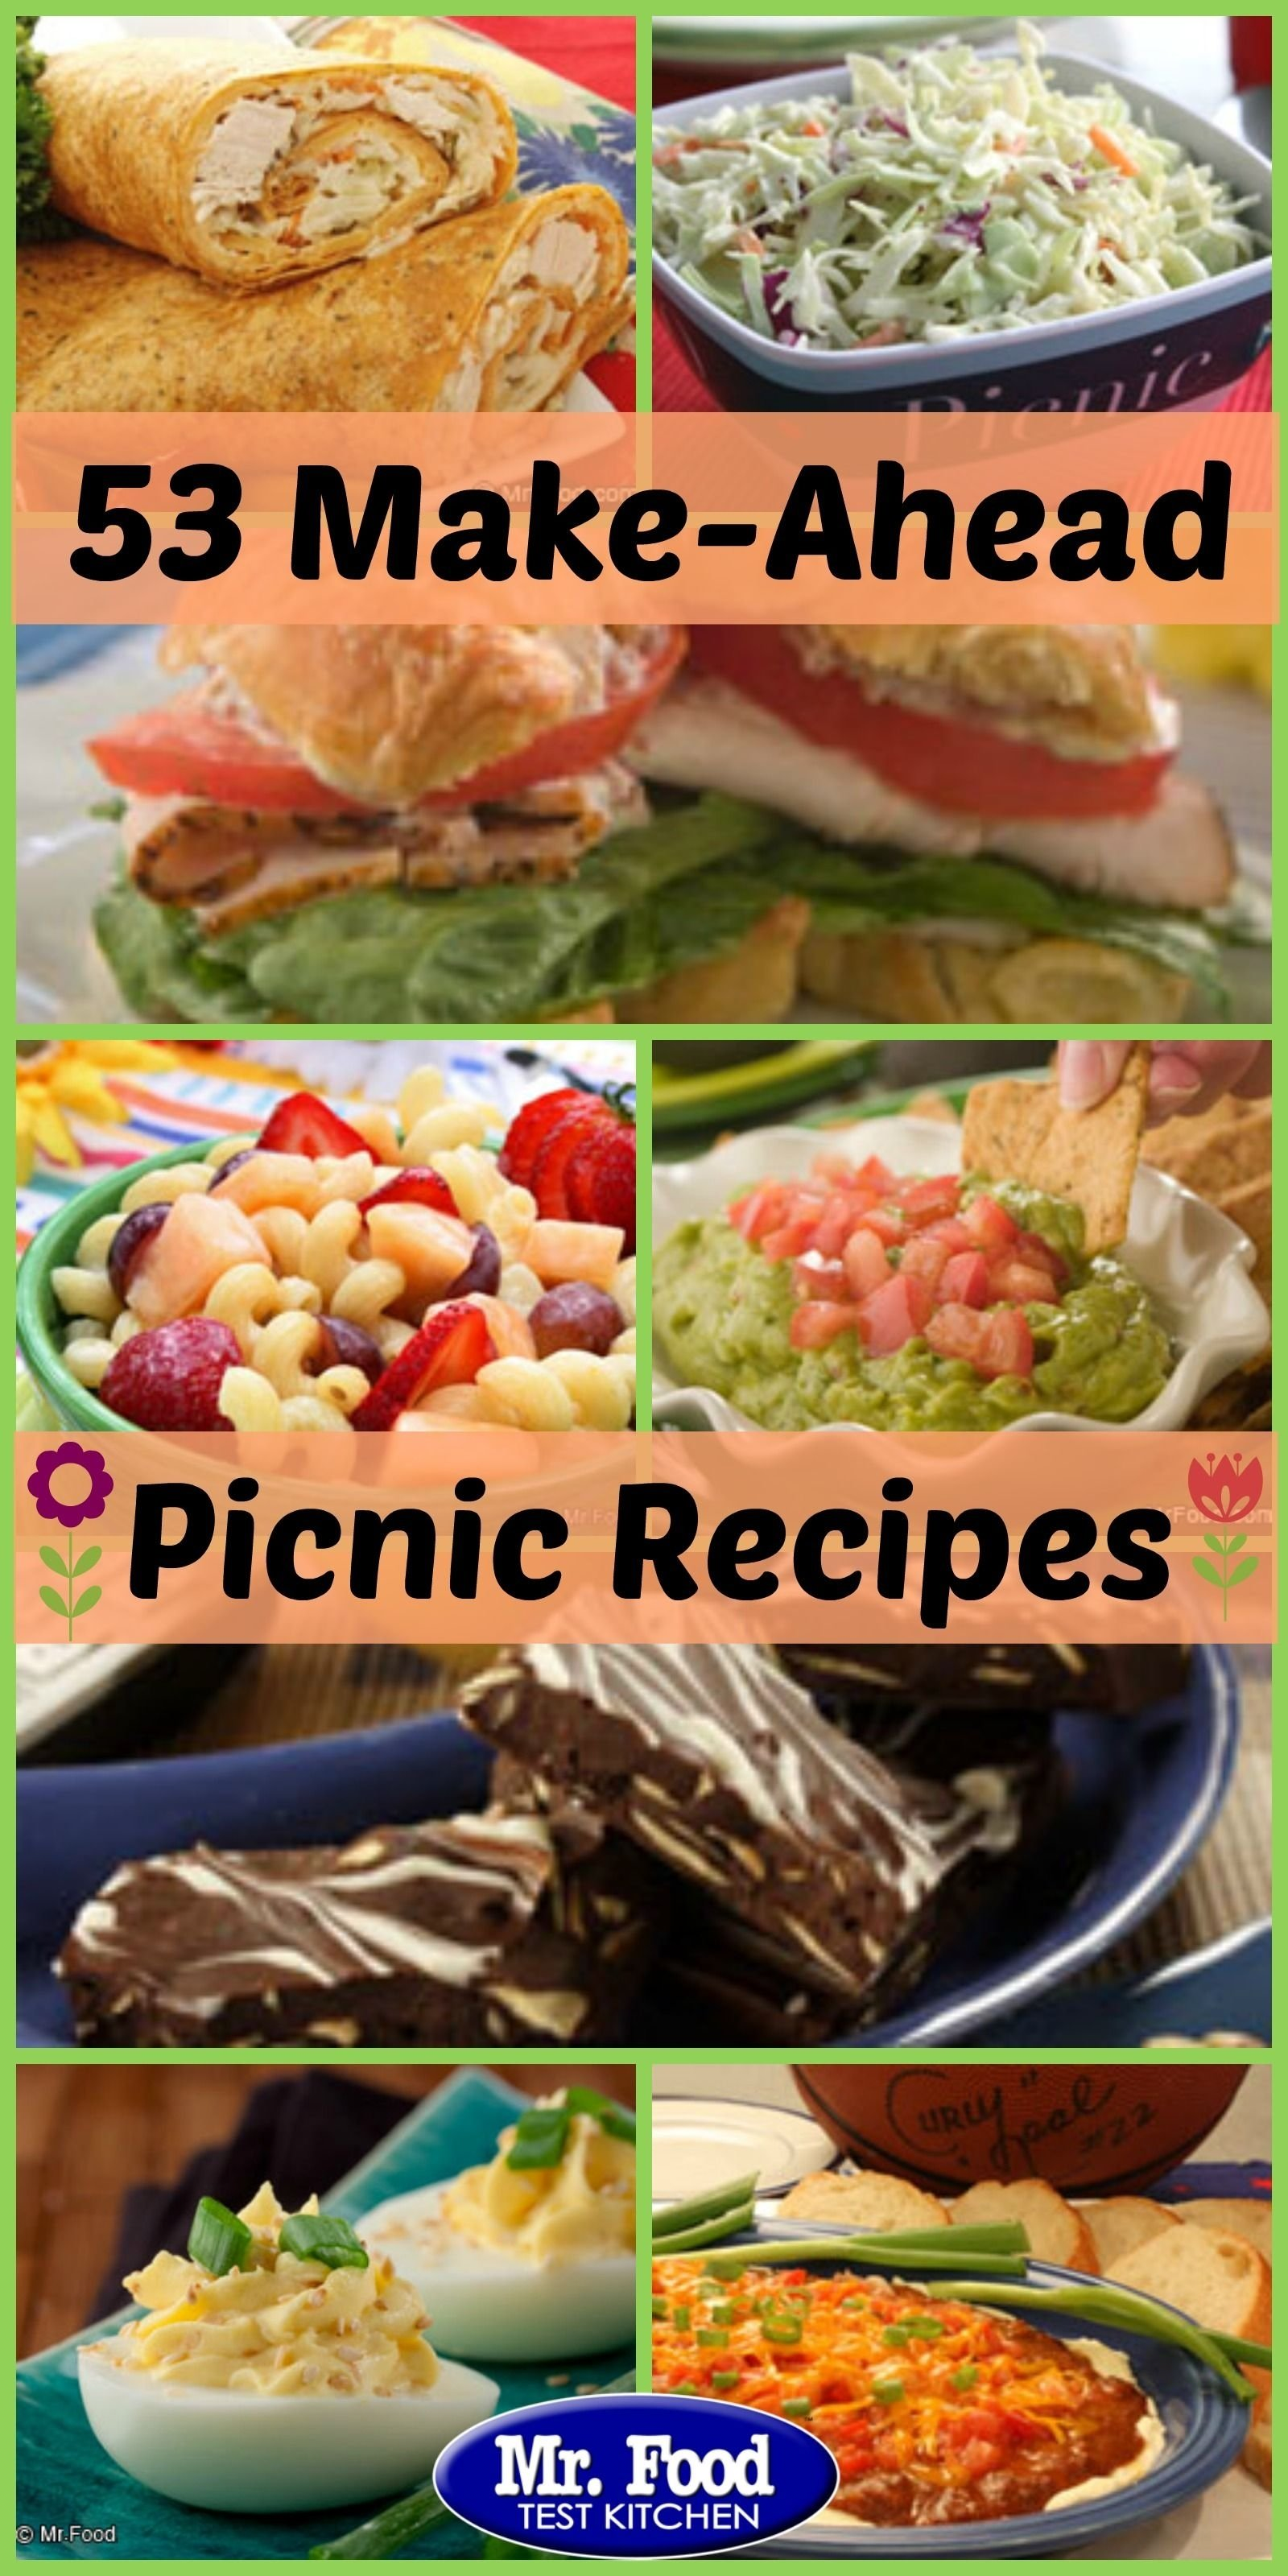 10 Ideal Picnic Food Ideas For A Crowd 2019